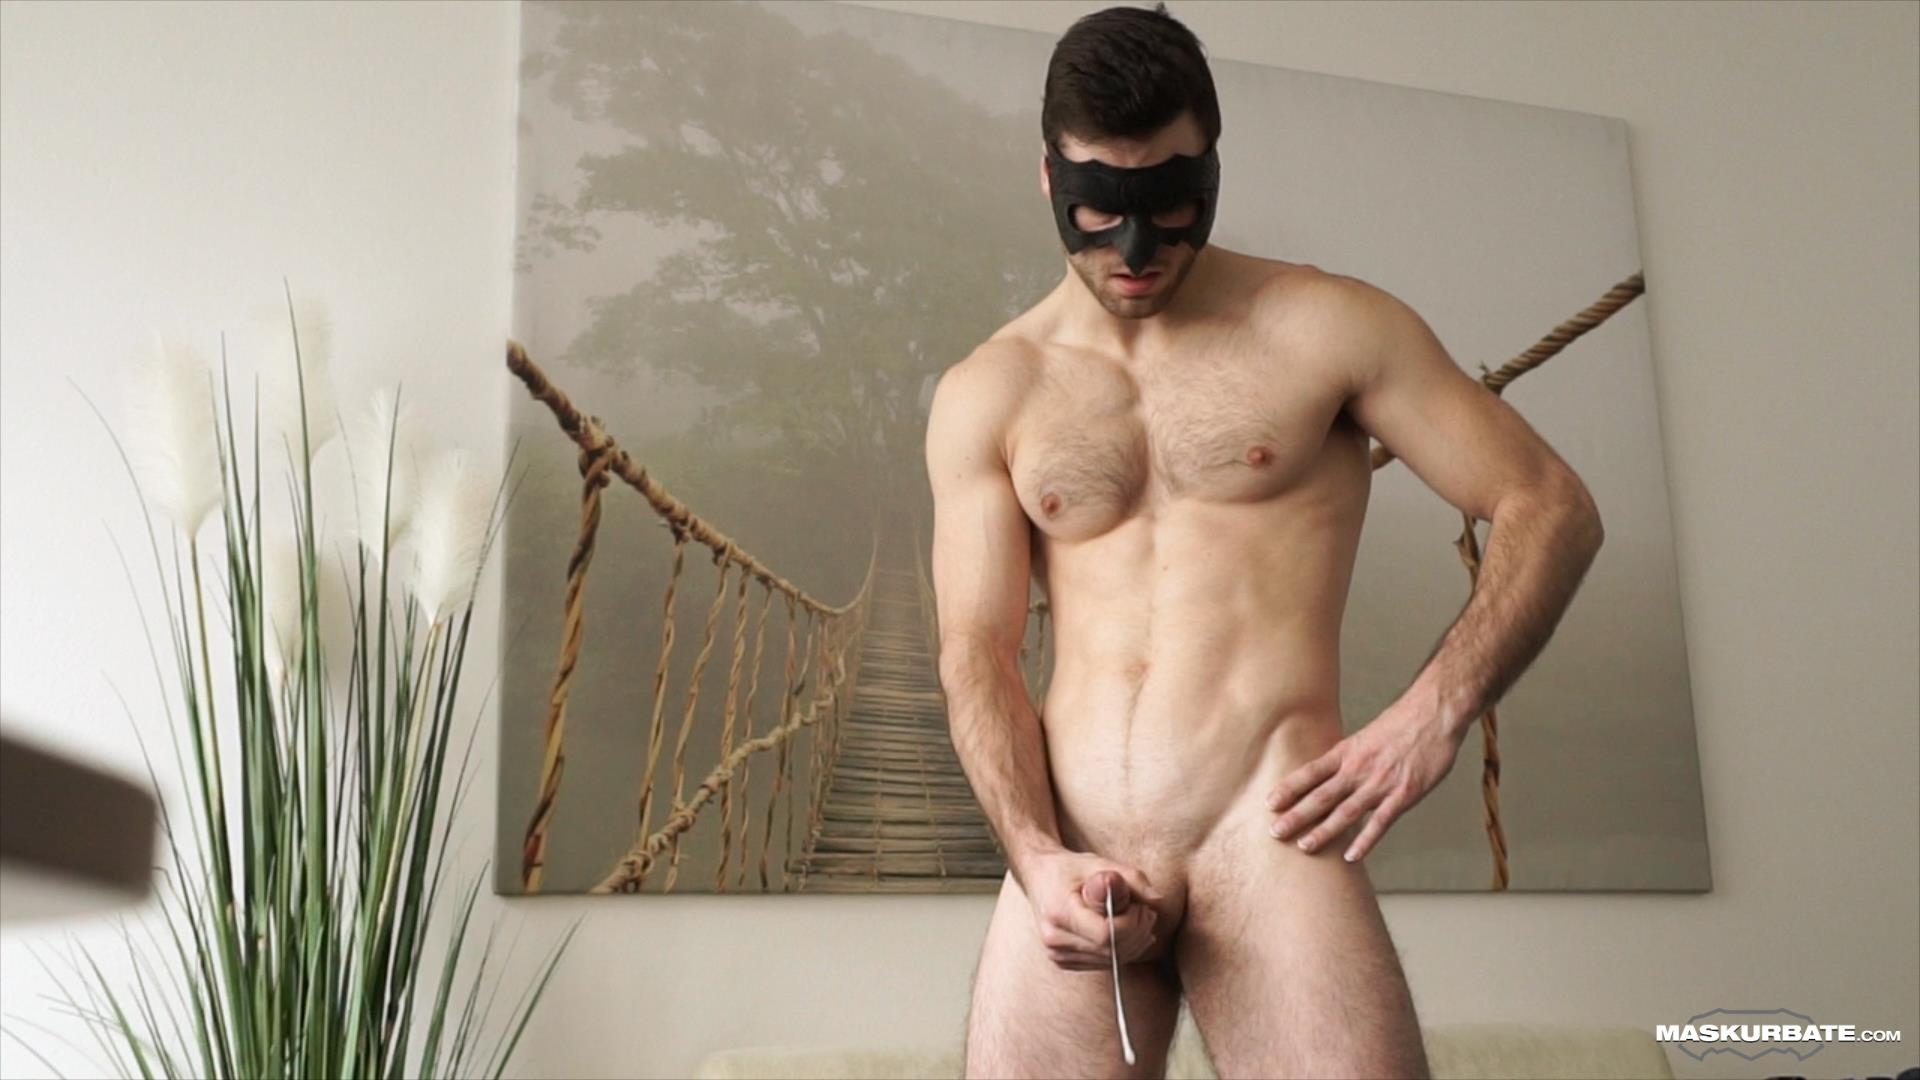 Maskurbate-Sam-Cuthan-Straight-Naked-Hairy-Muscle-Guy-Jerk-off-15 Straight Masked Hairy Muscle Hunk Strokes His Big Uncut Cock